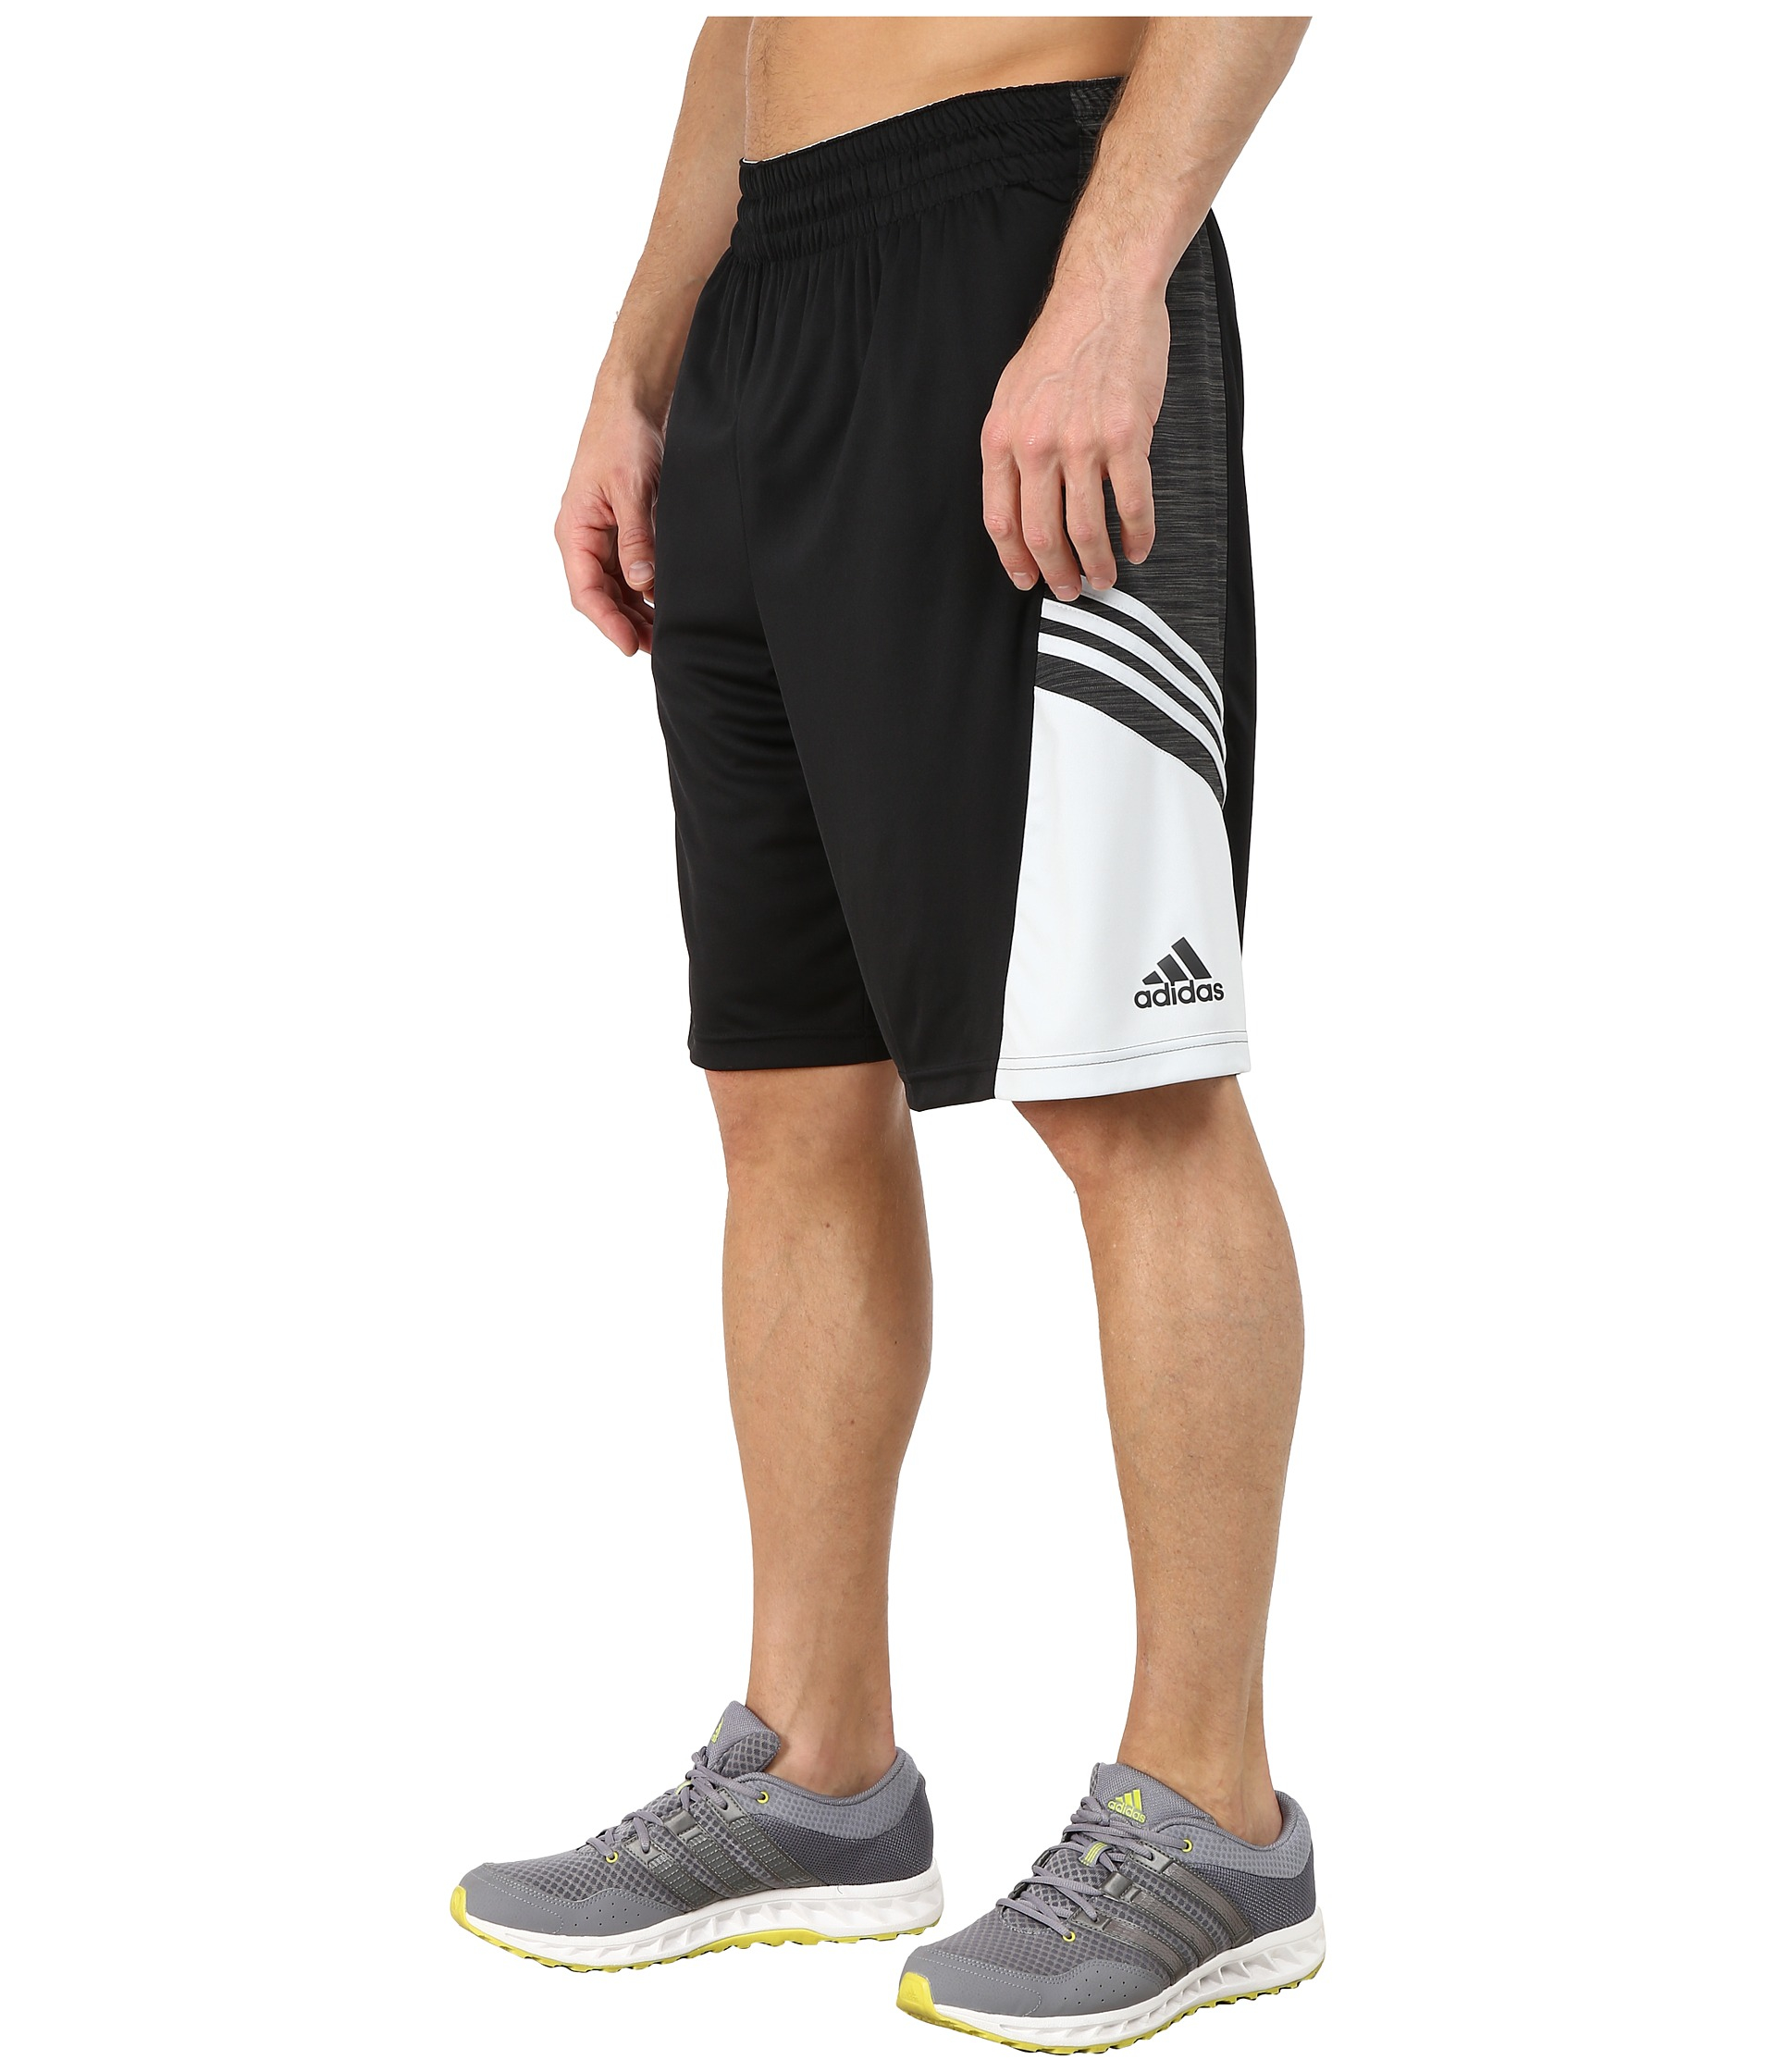 adidas team speed performance basketball shorts